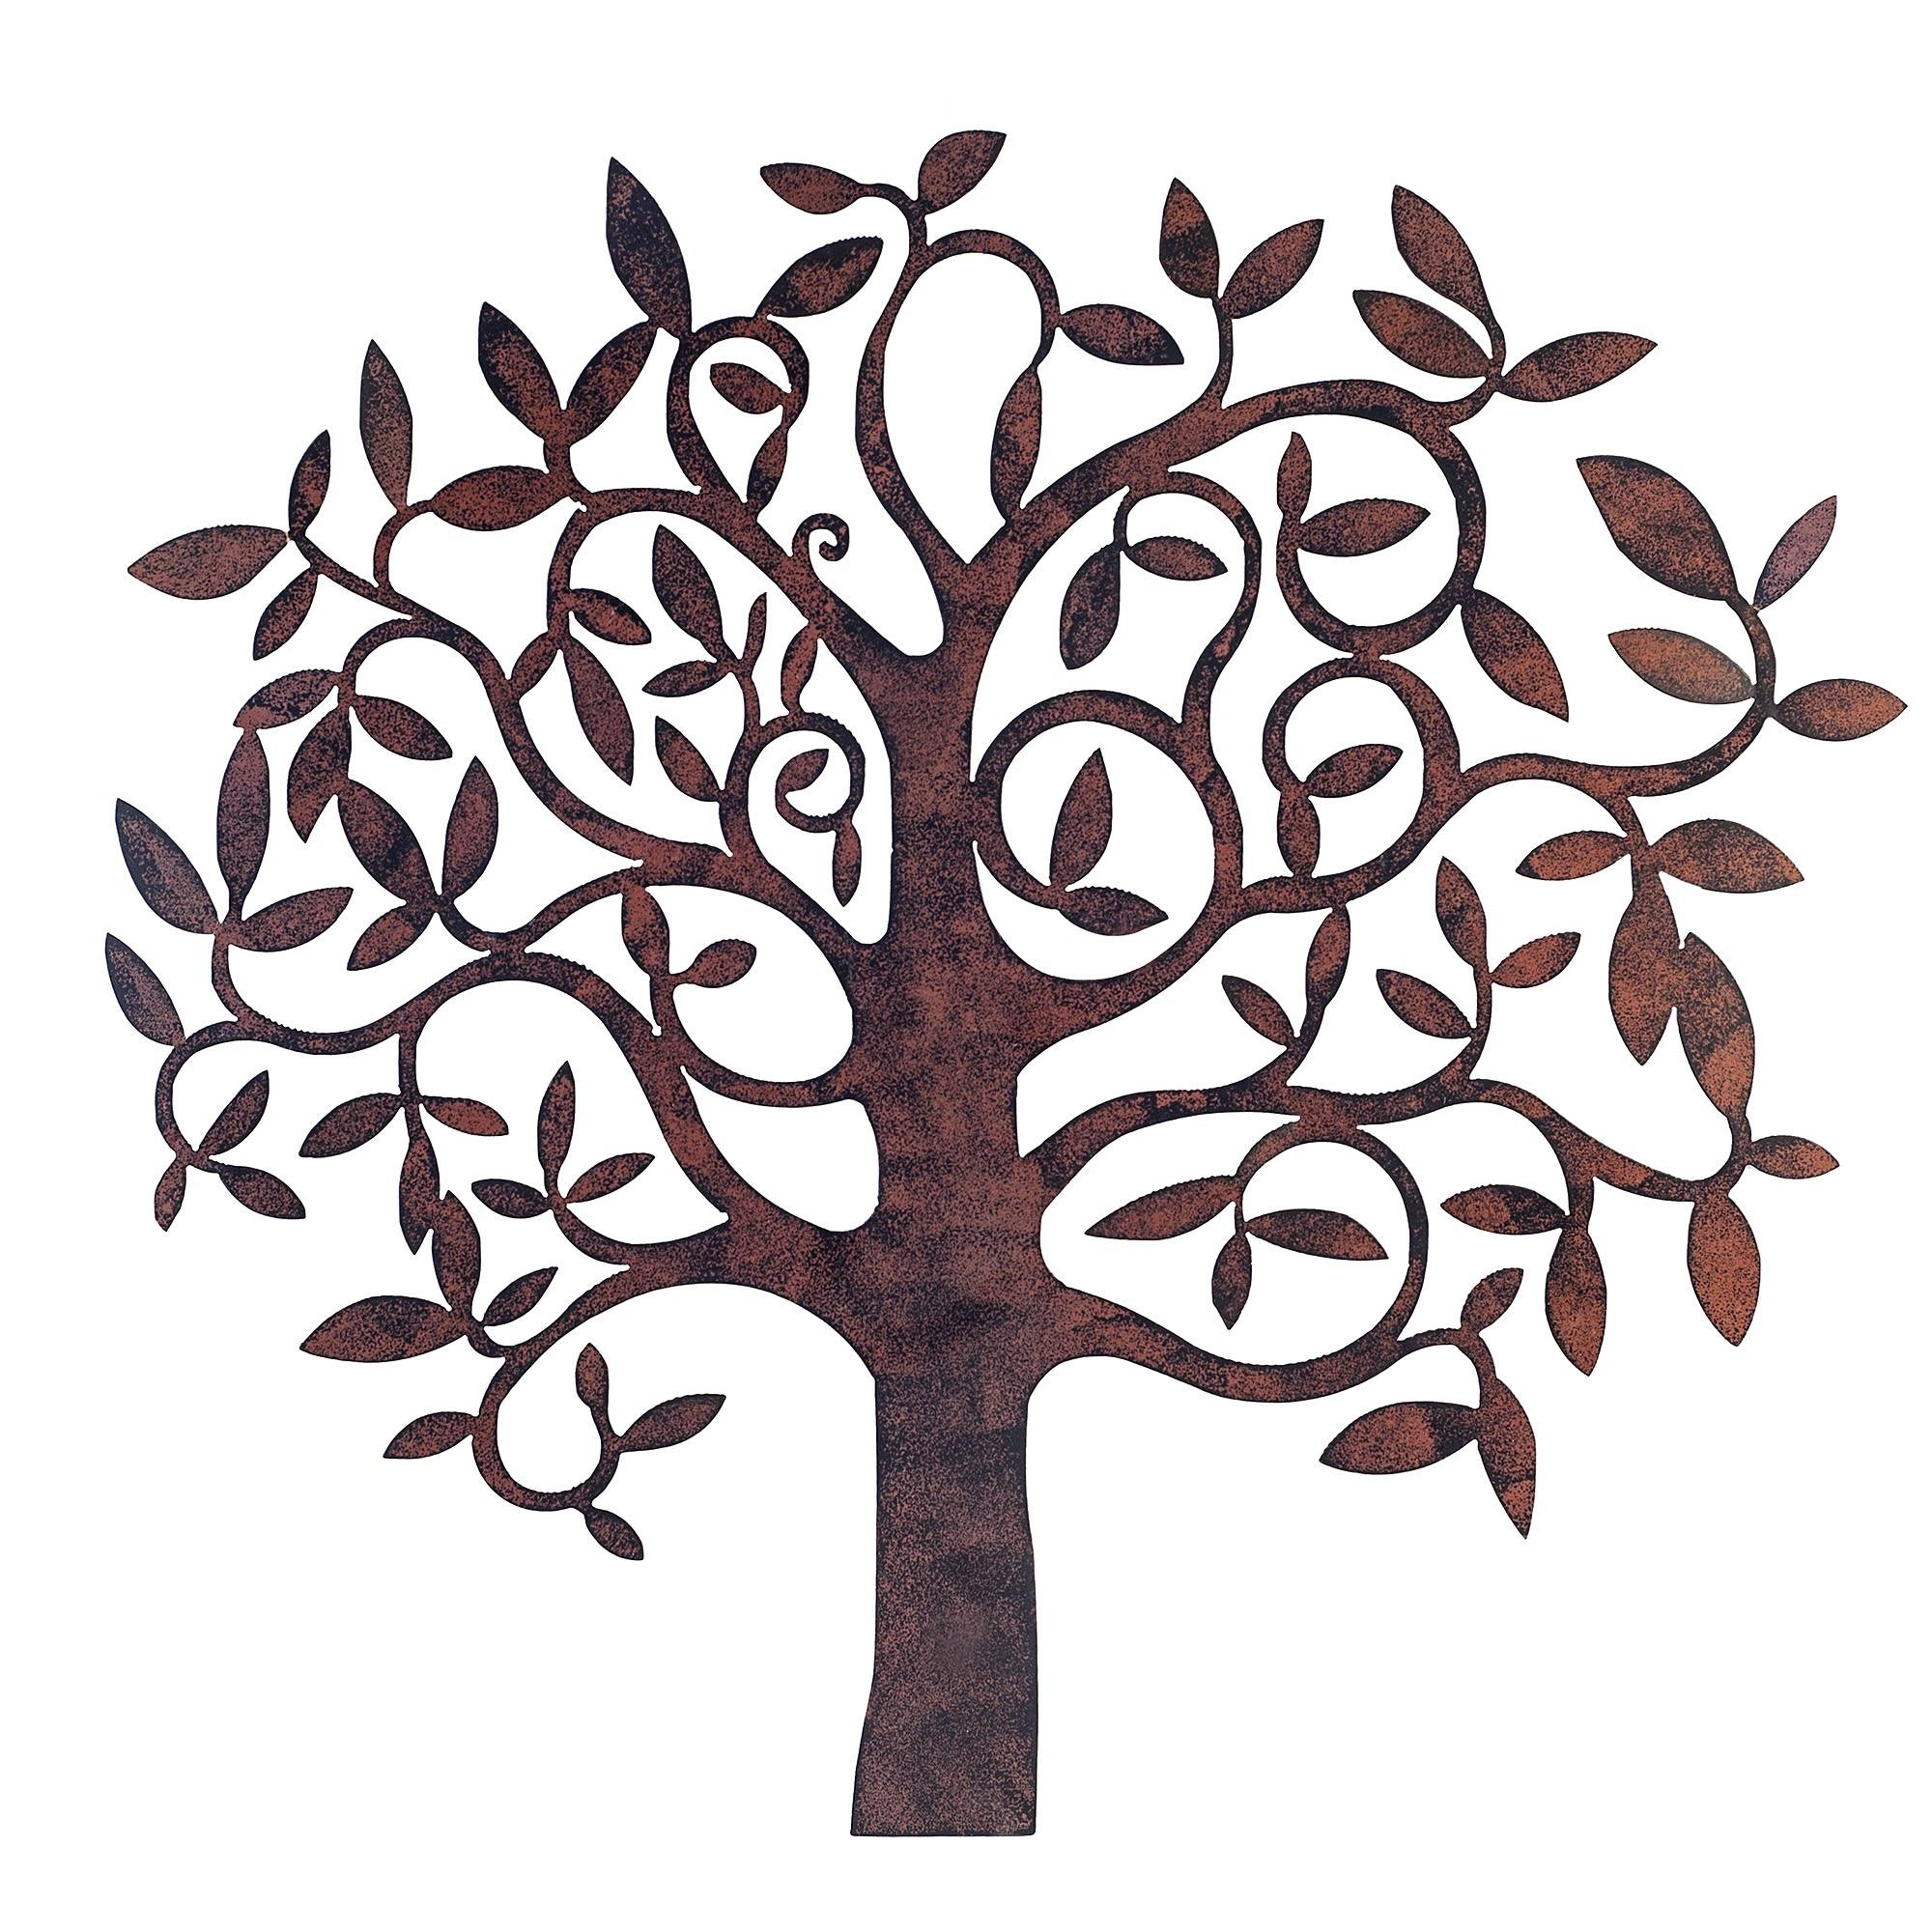 Stupendous Large Metal Tree Wall Decoration 64 Casa Cortes For Recent Large Tree Of Life Metal Wall Art (View 14 of 20)